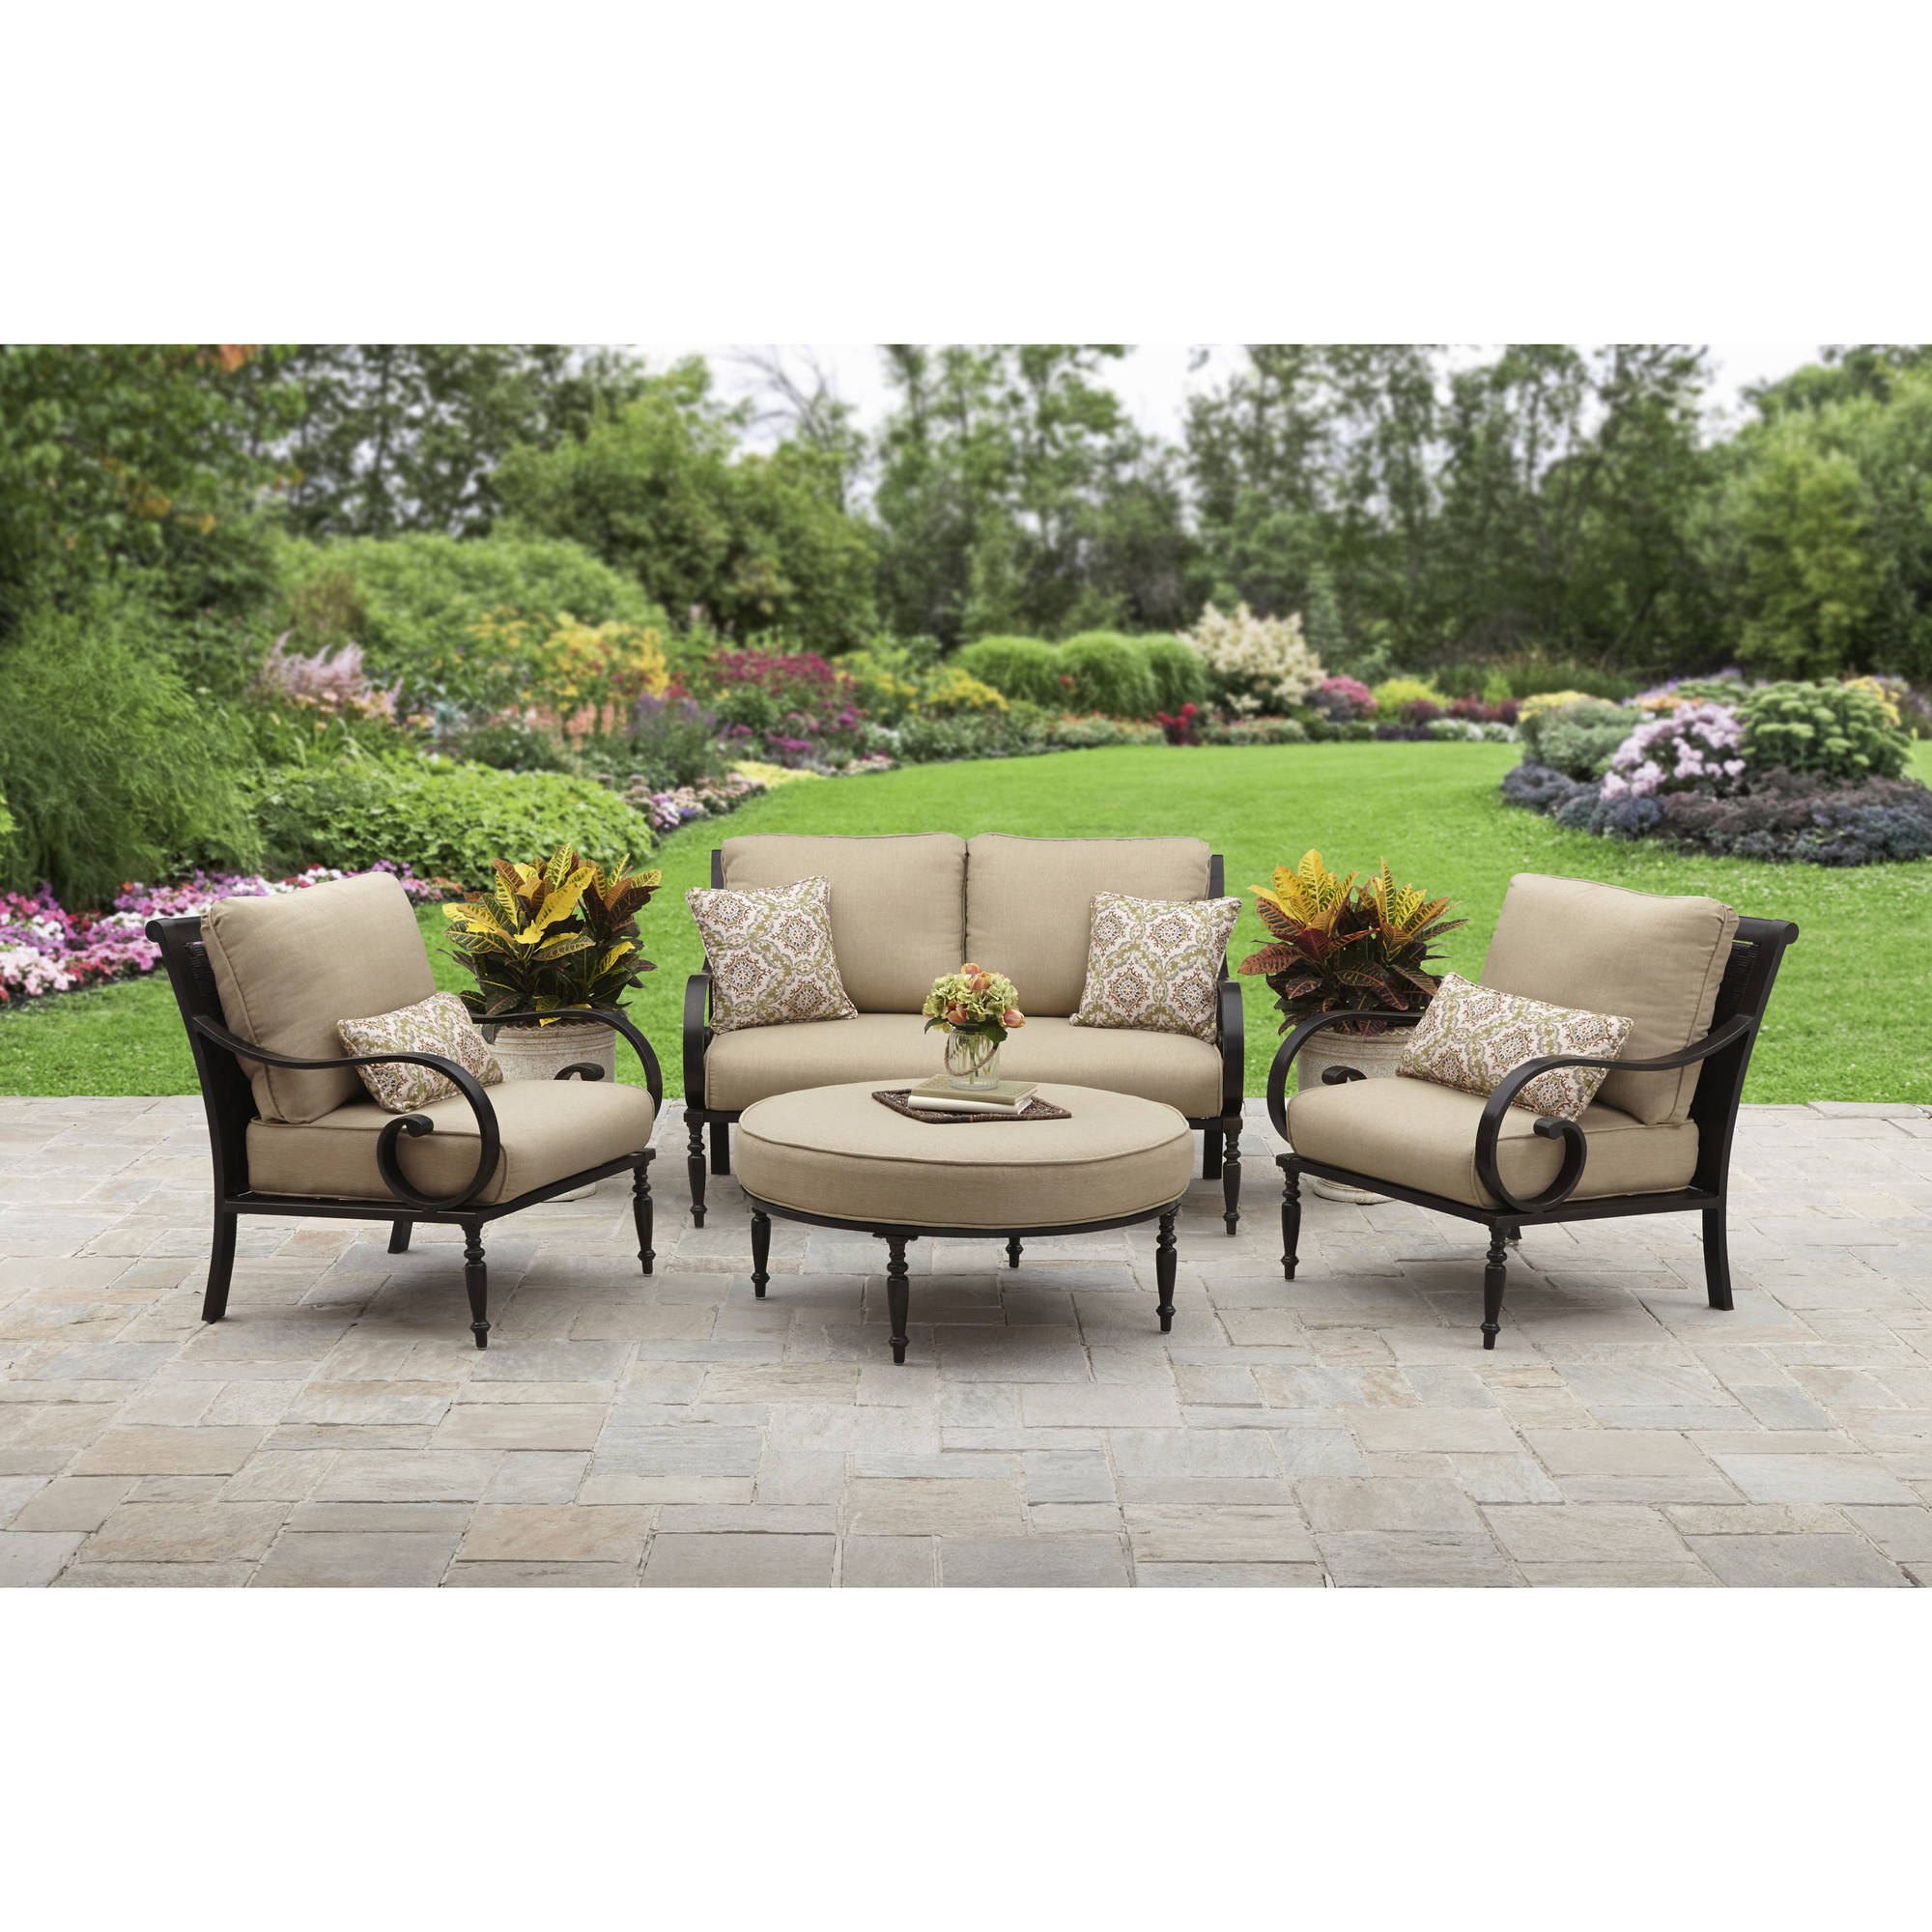 patio sets better homes and gardens englewood heights ii aluminum 4-piece outdoor patio ITEALEB